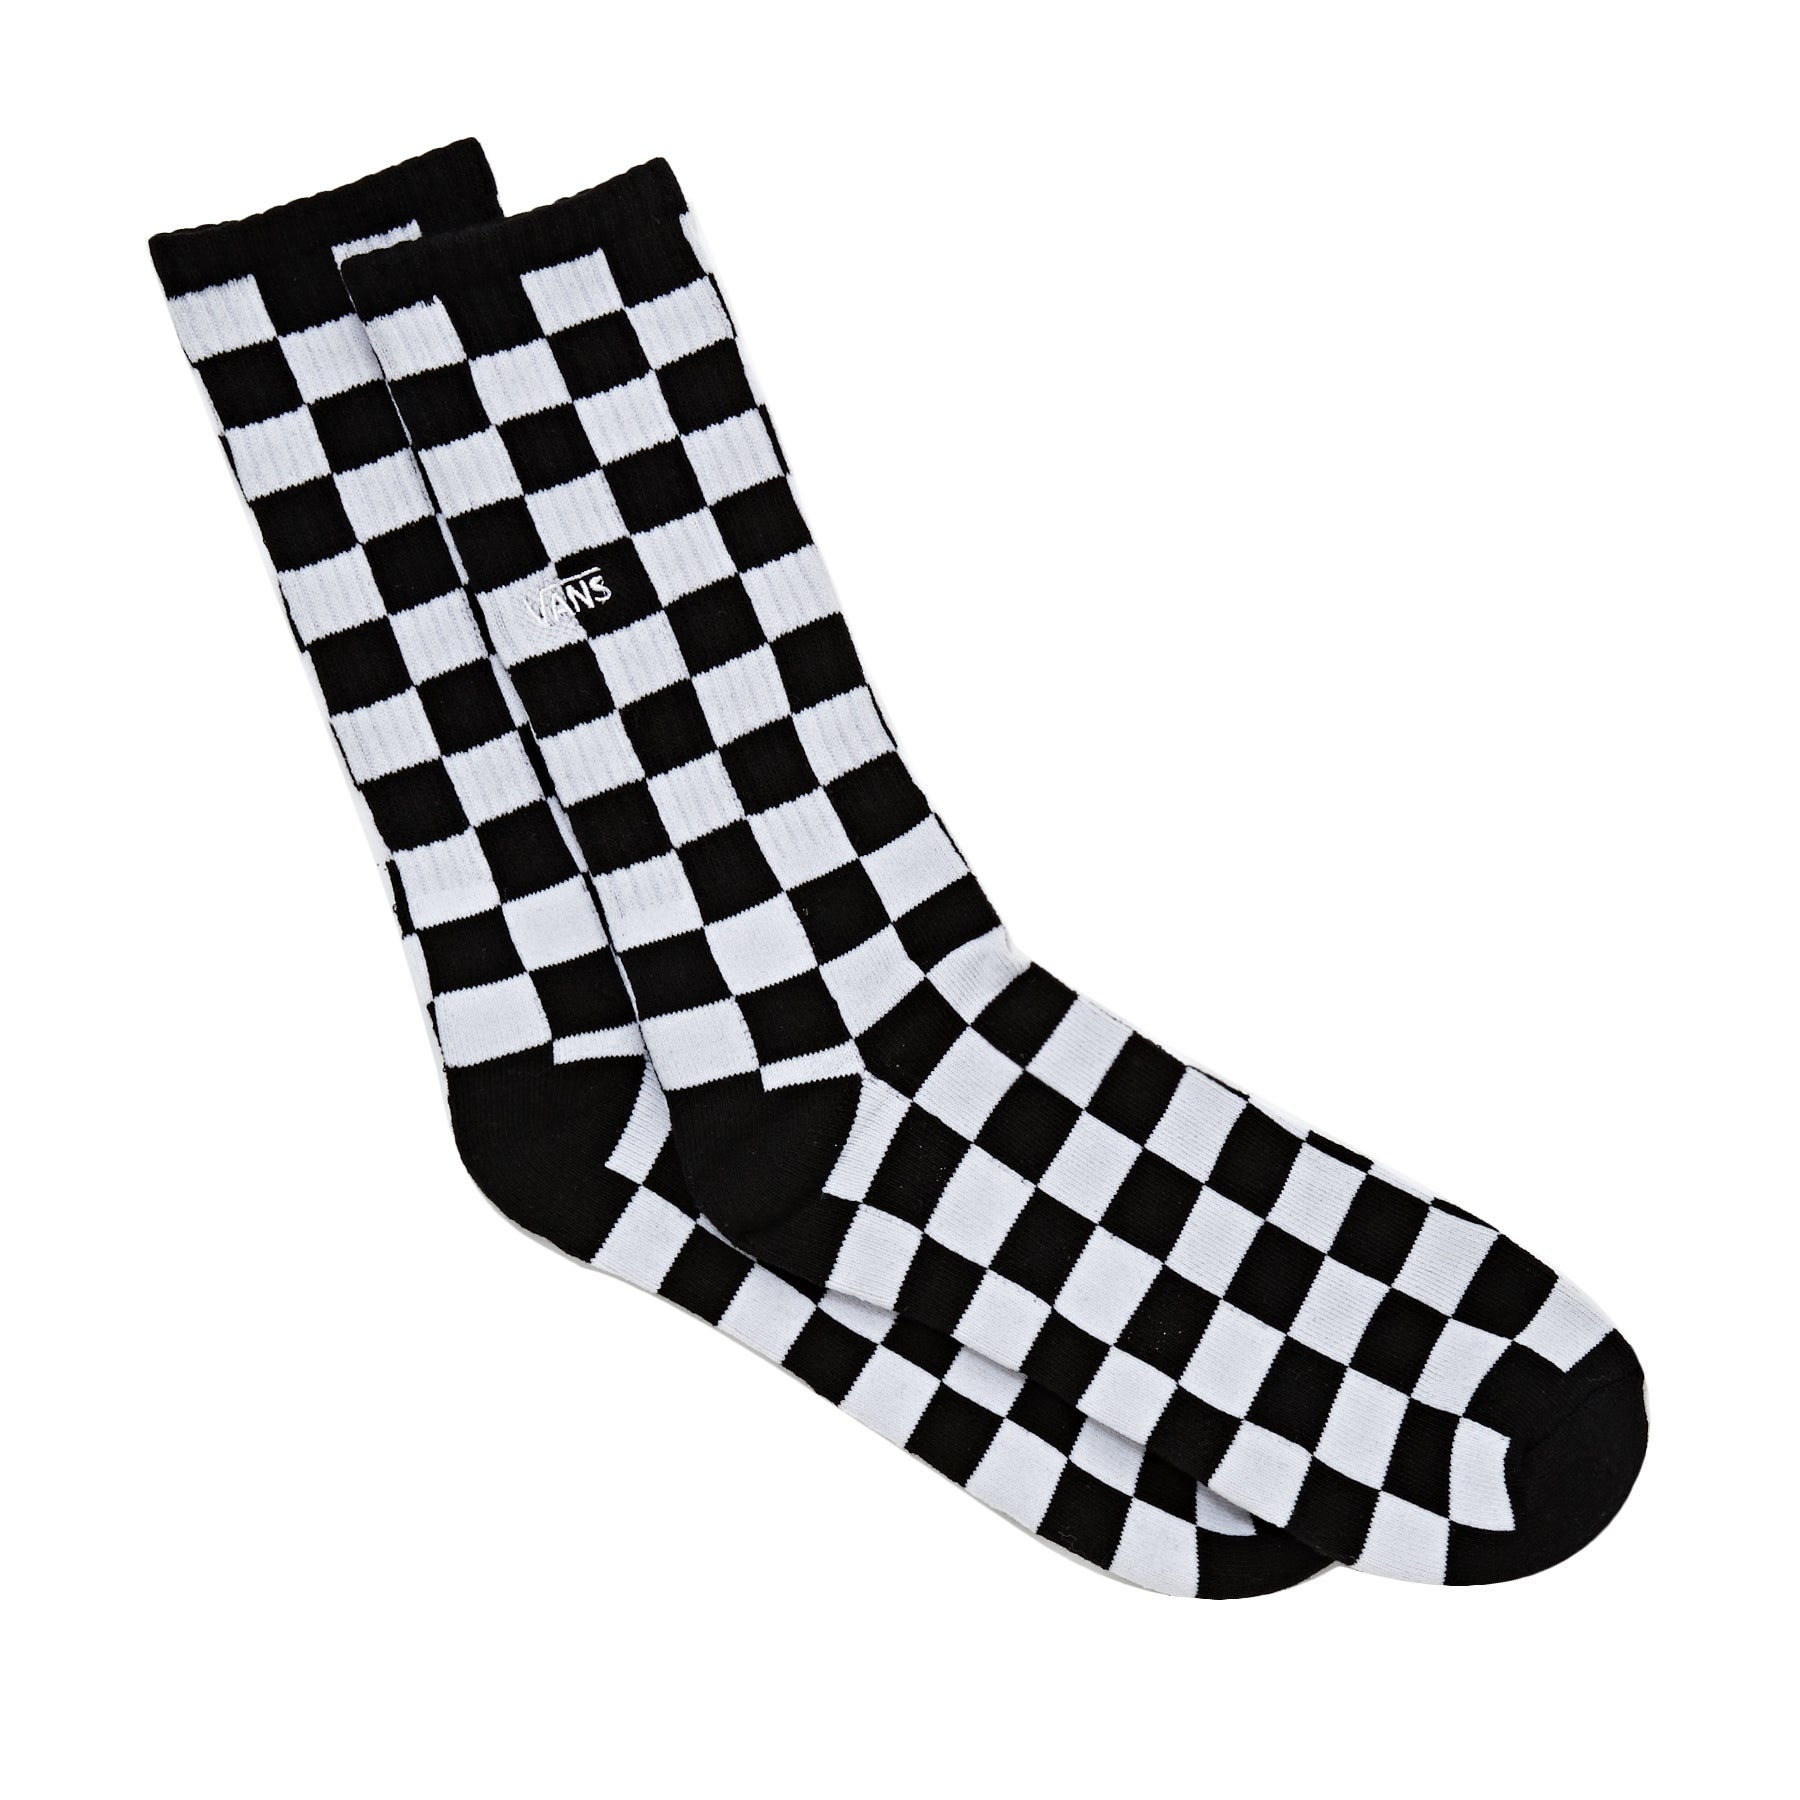 174c9125fc611c Vans Checkerboard Crew Socks available from Surfdome